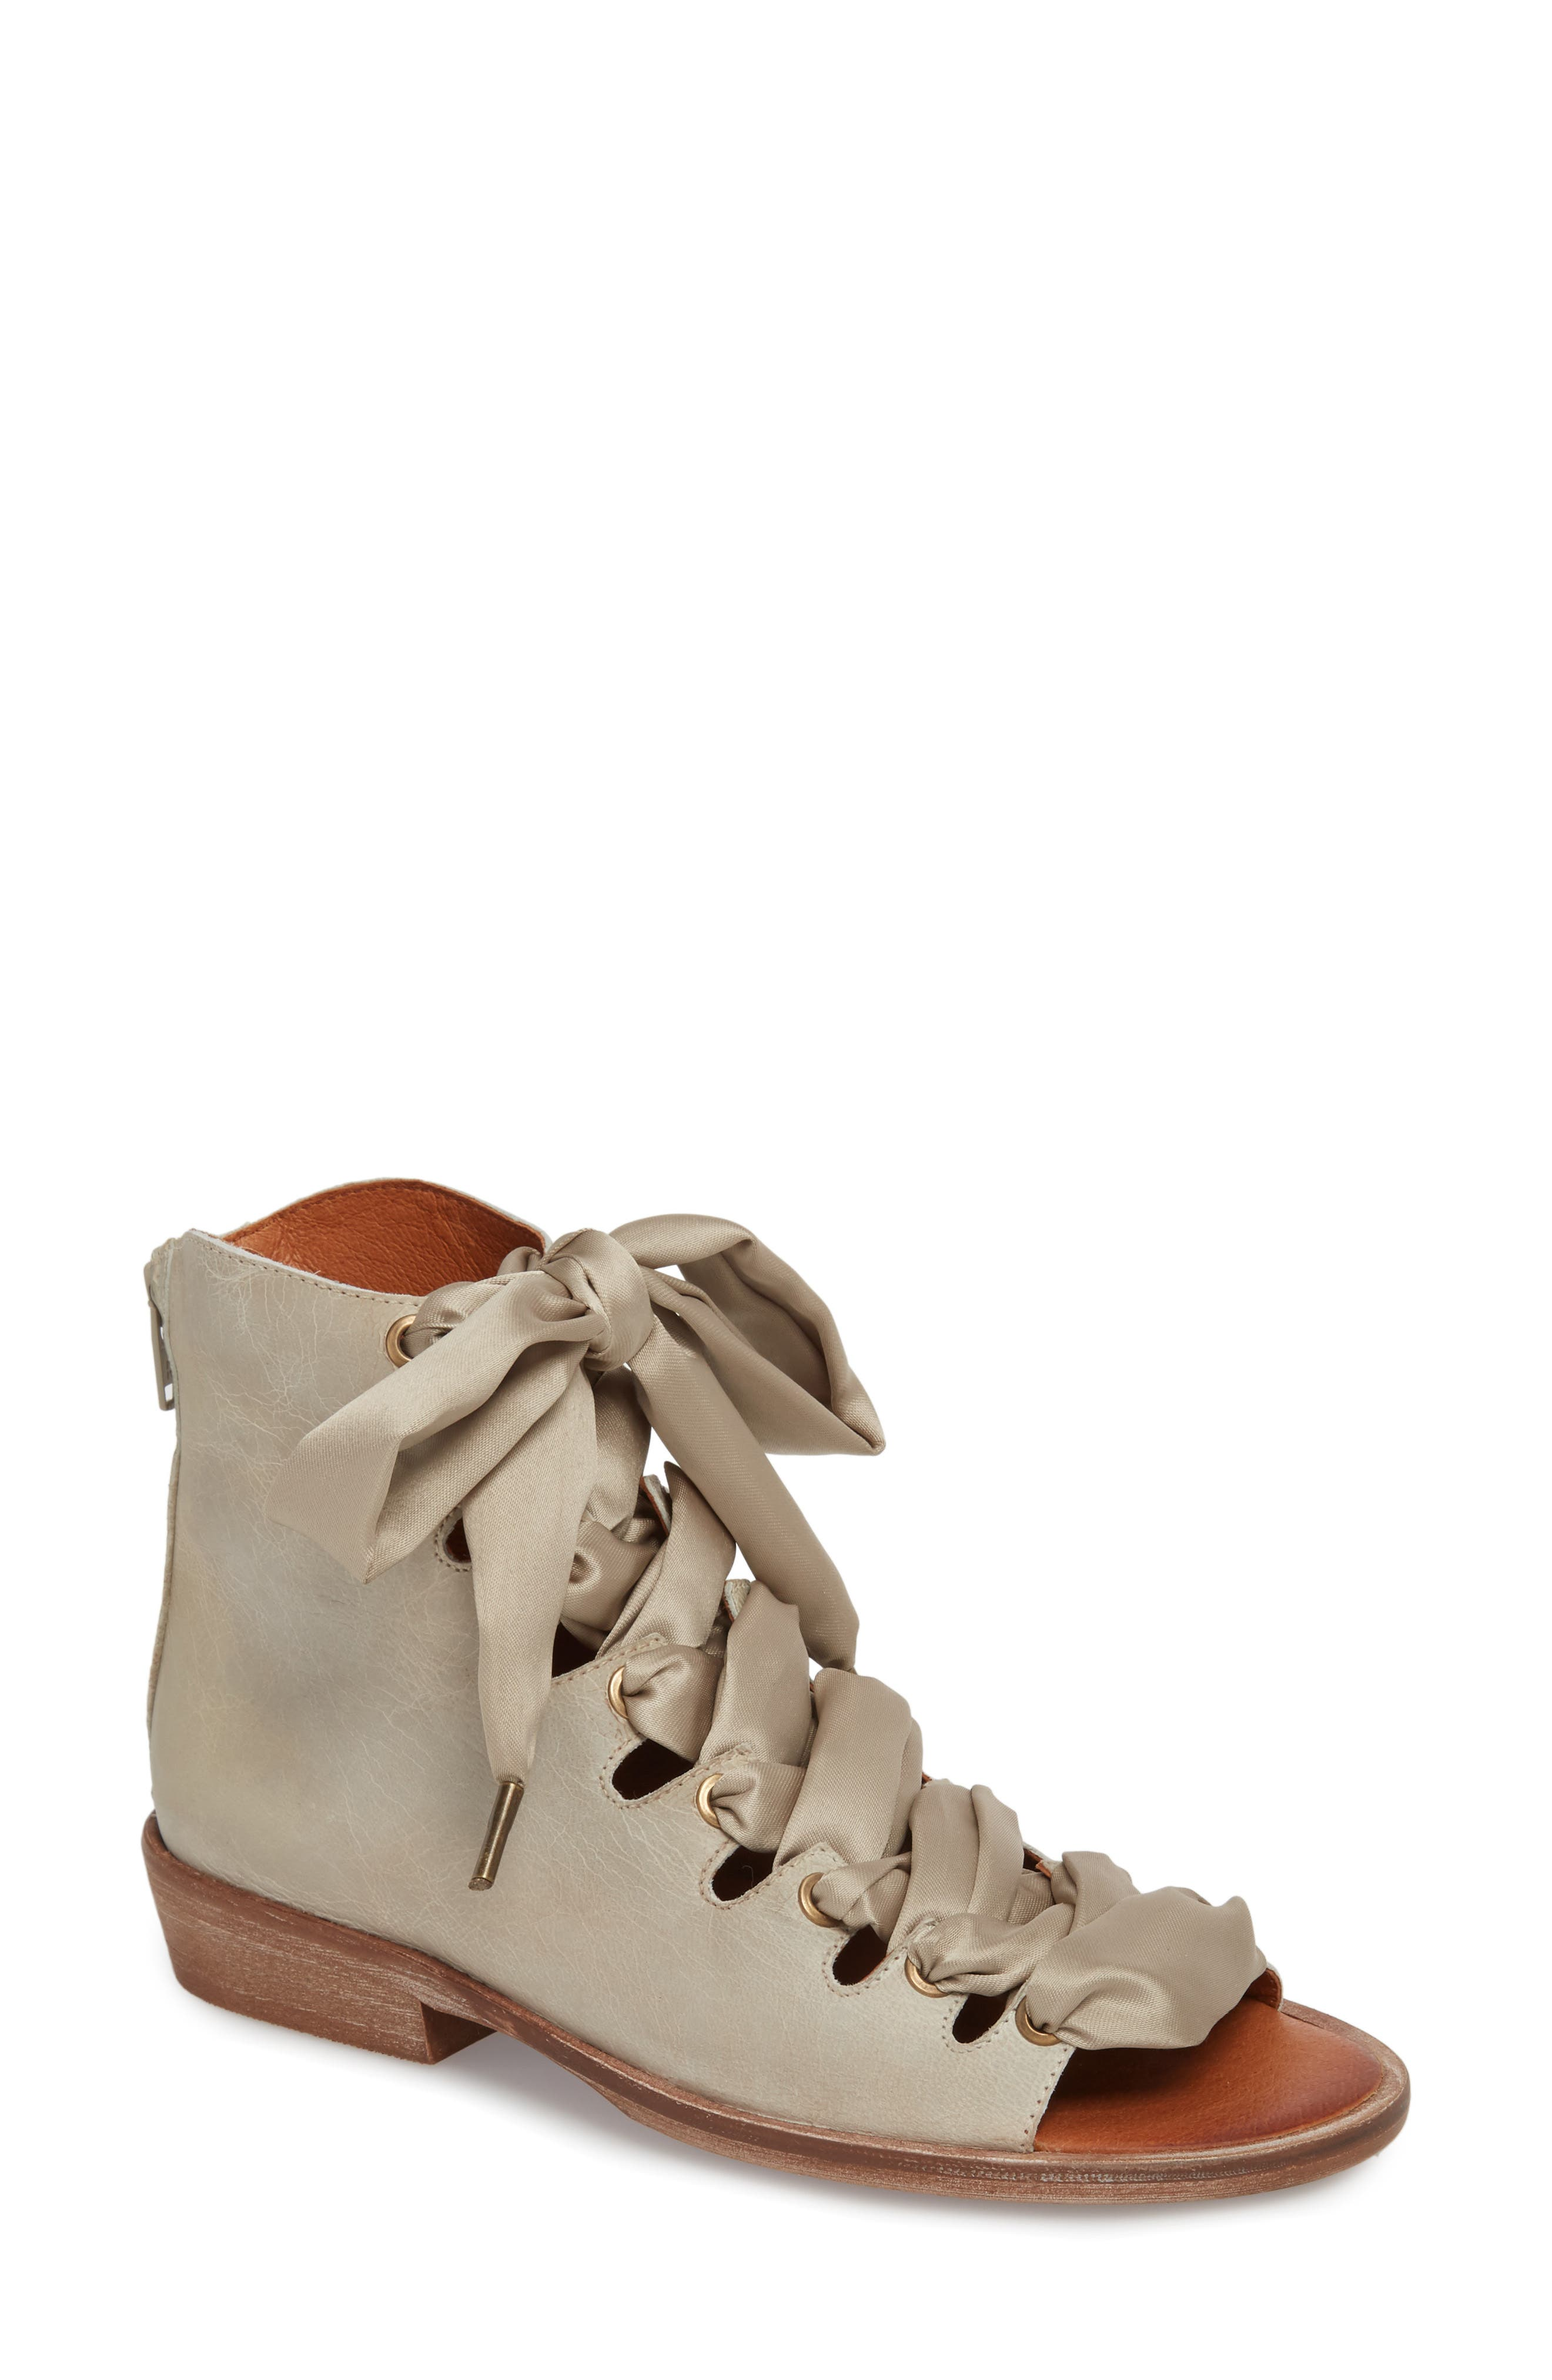 Main Image - Free People Palms Lace-Up Bootie Sandal (Women)